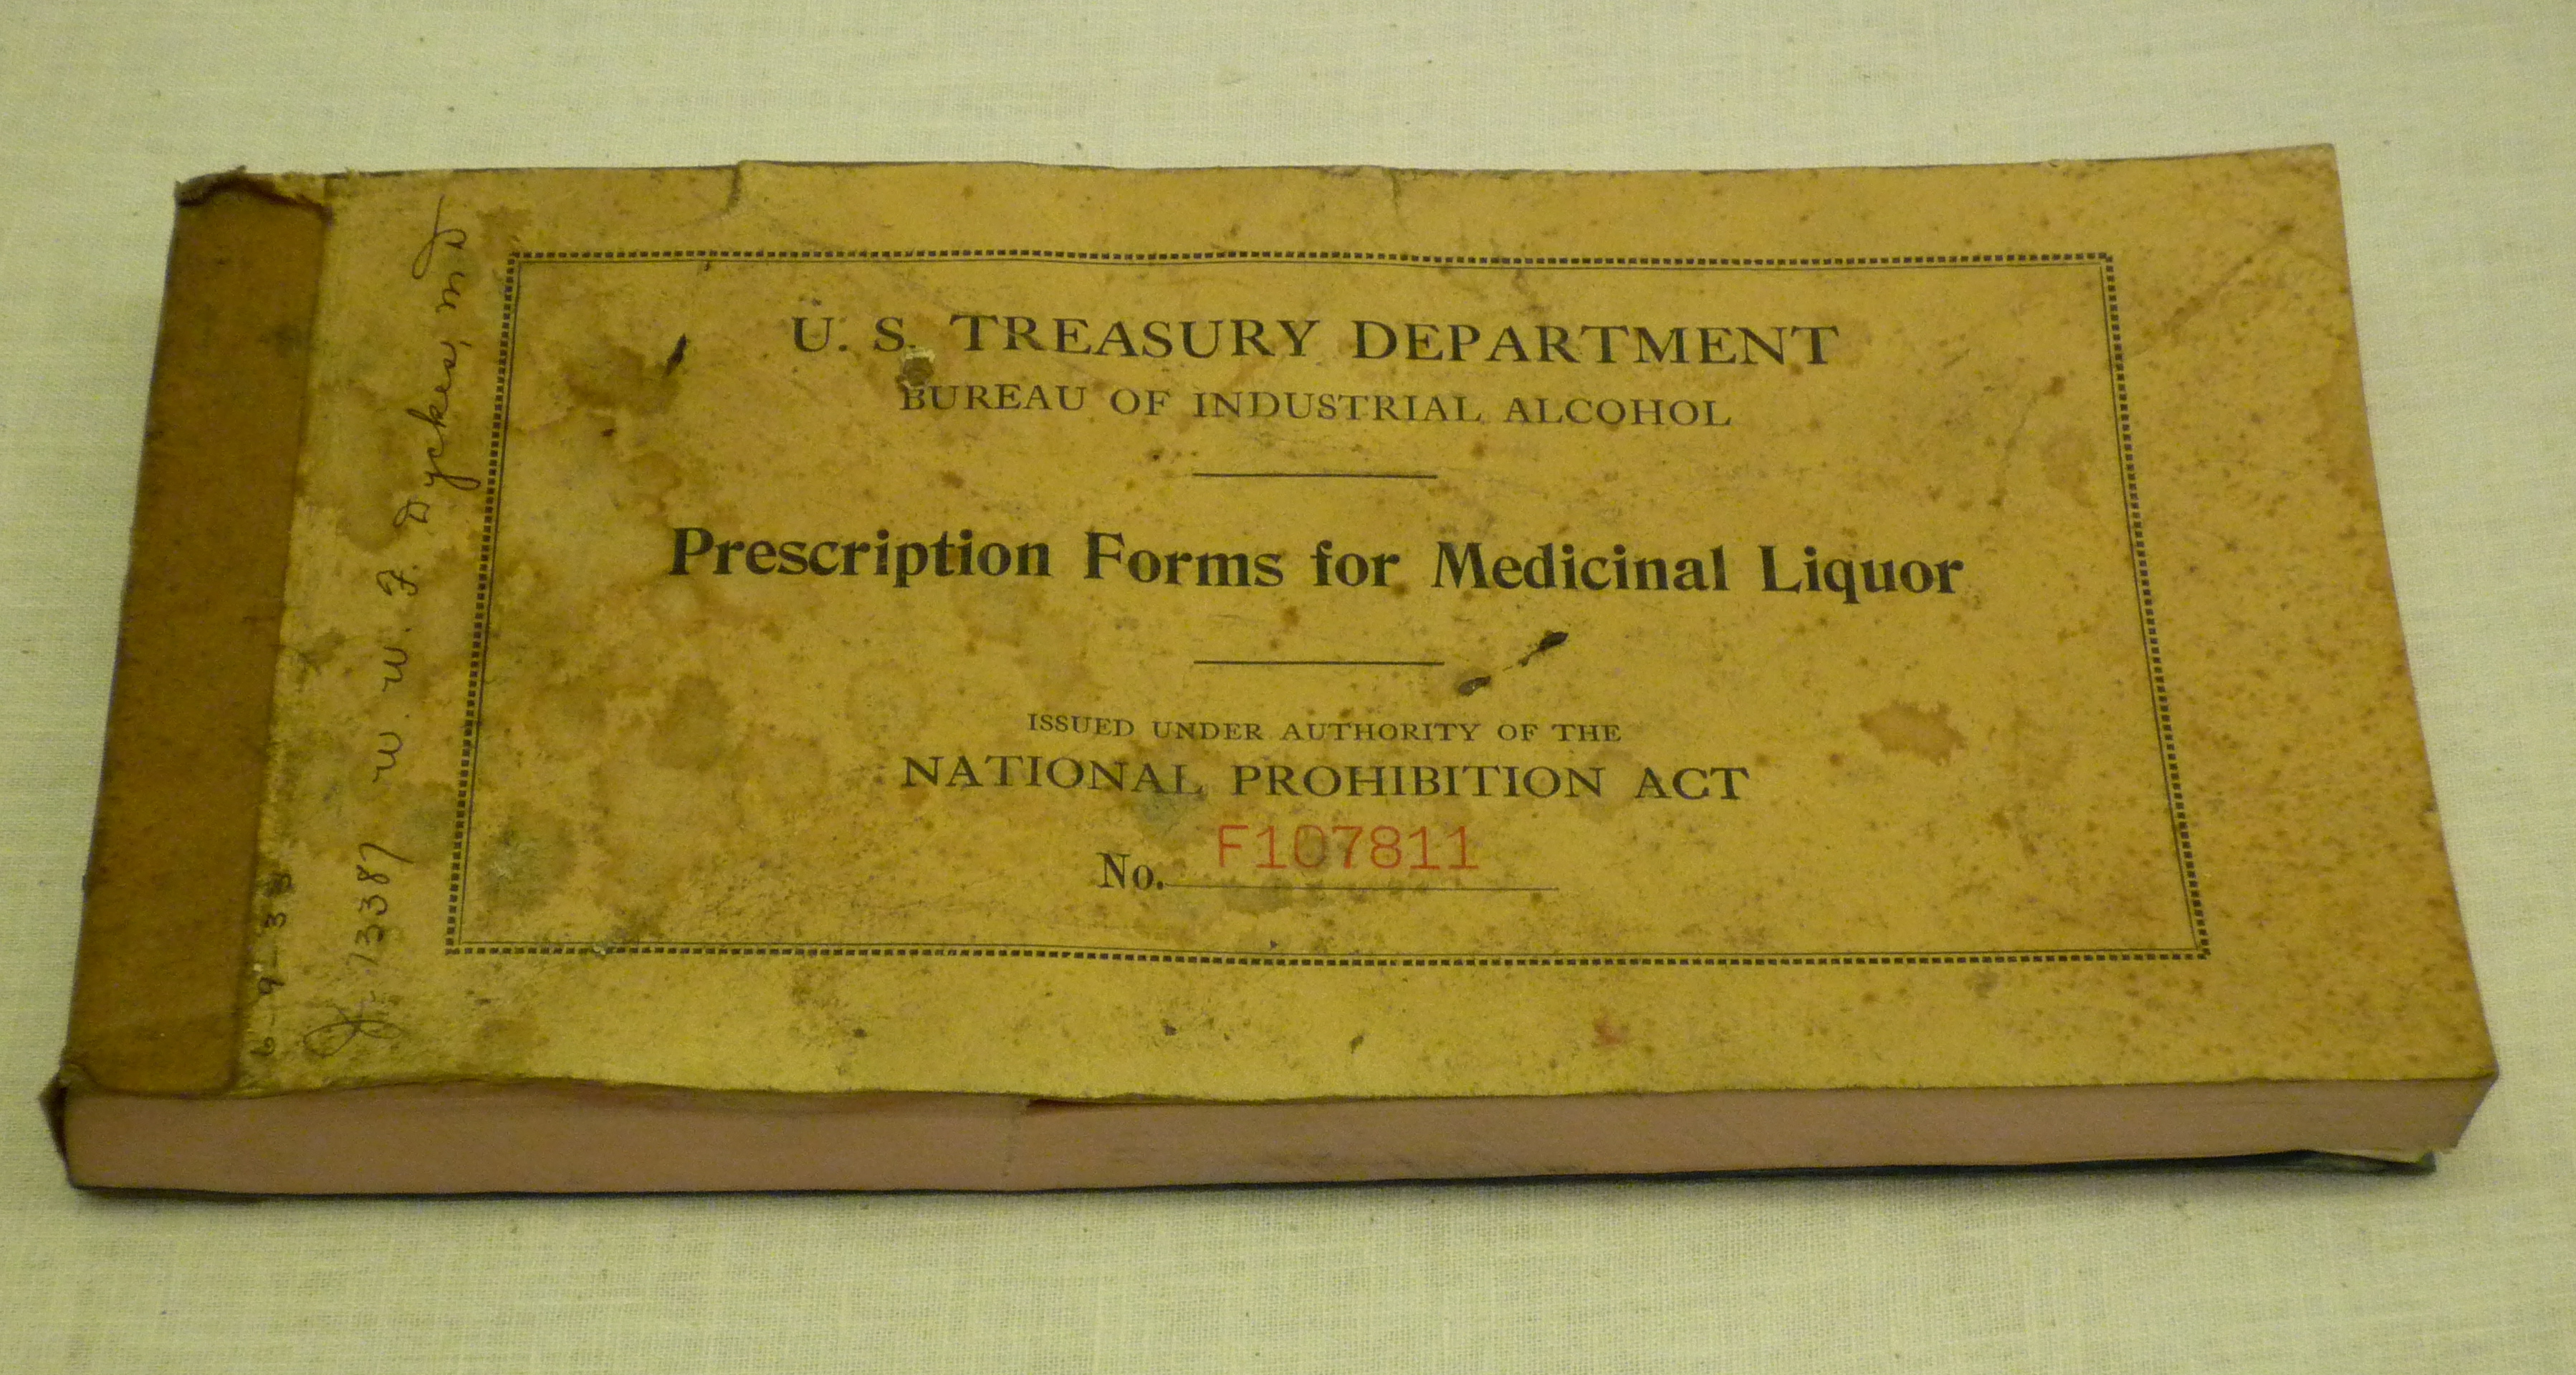 sociological images prohibition and medicinal alcohol